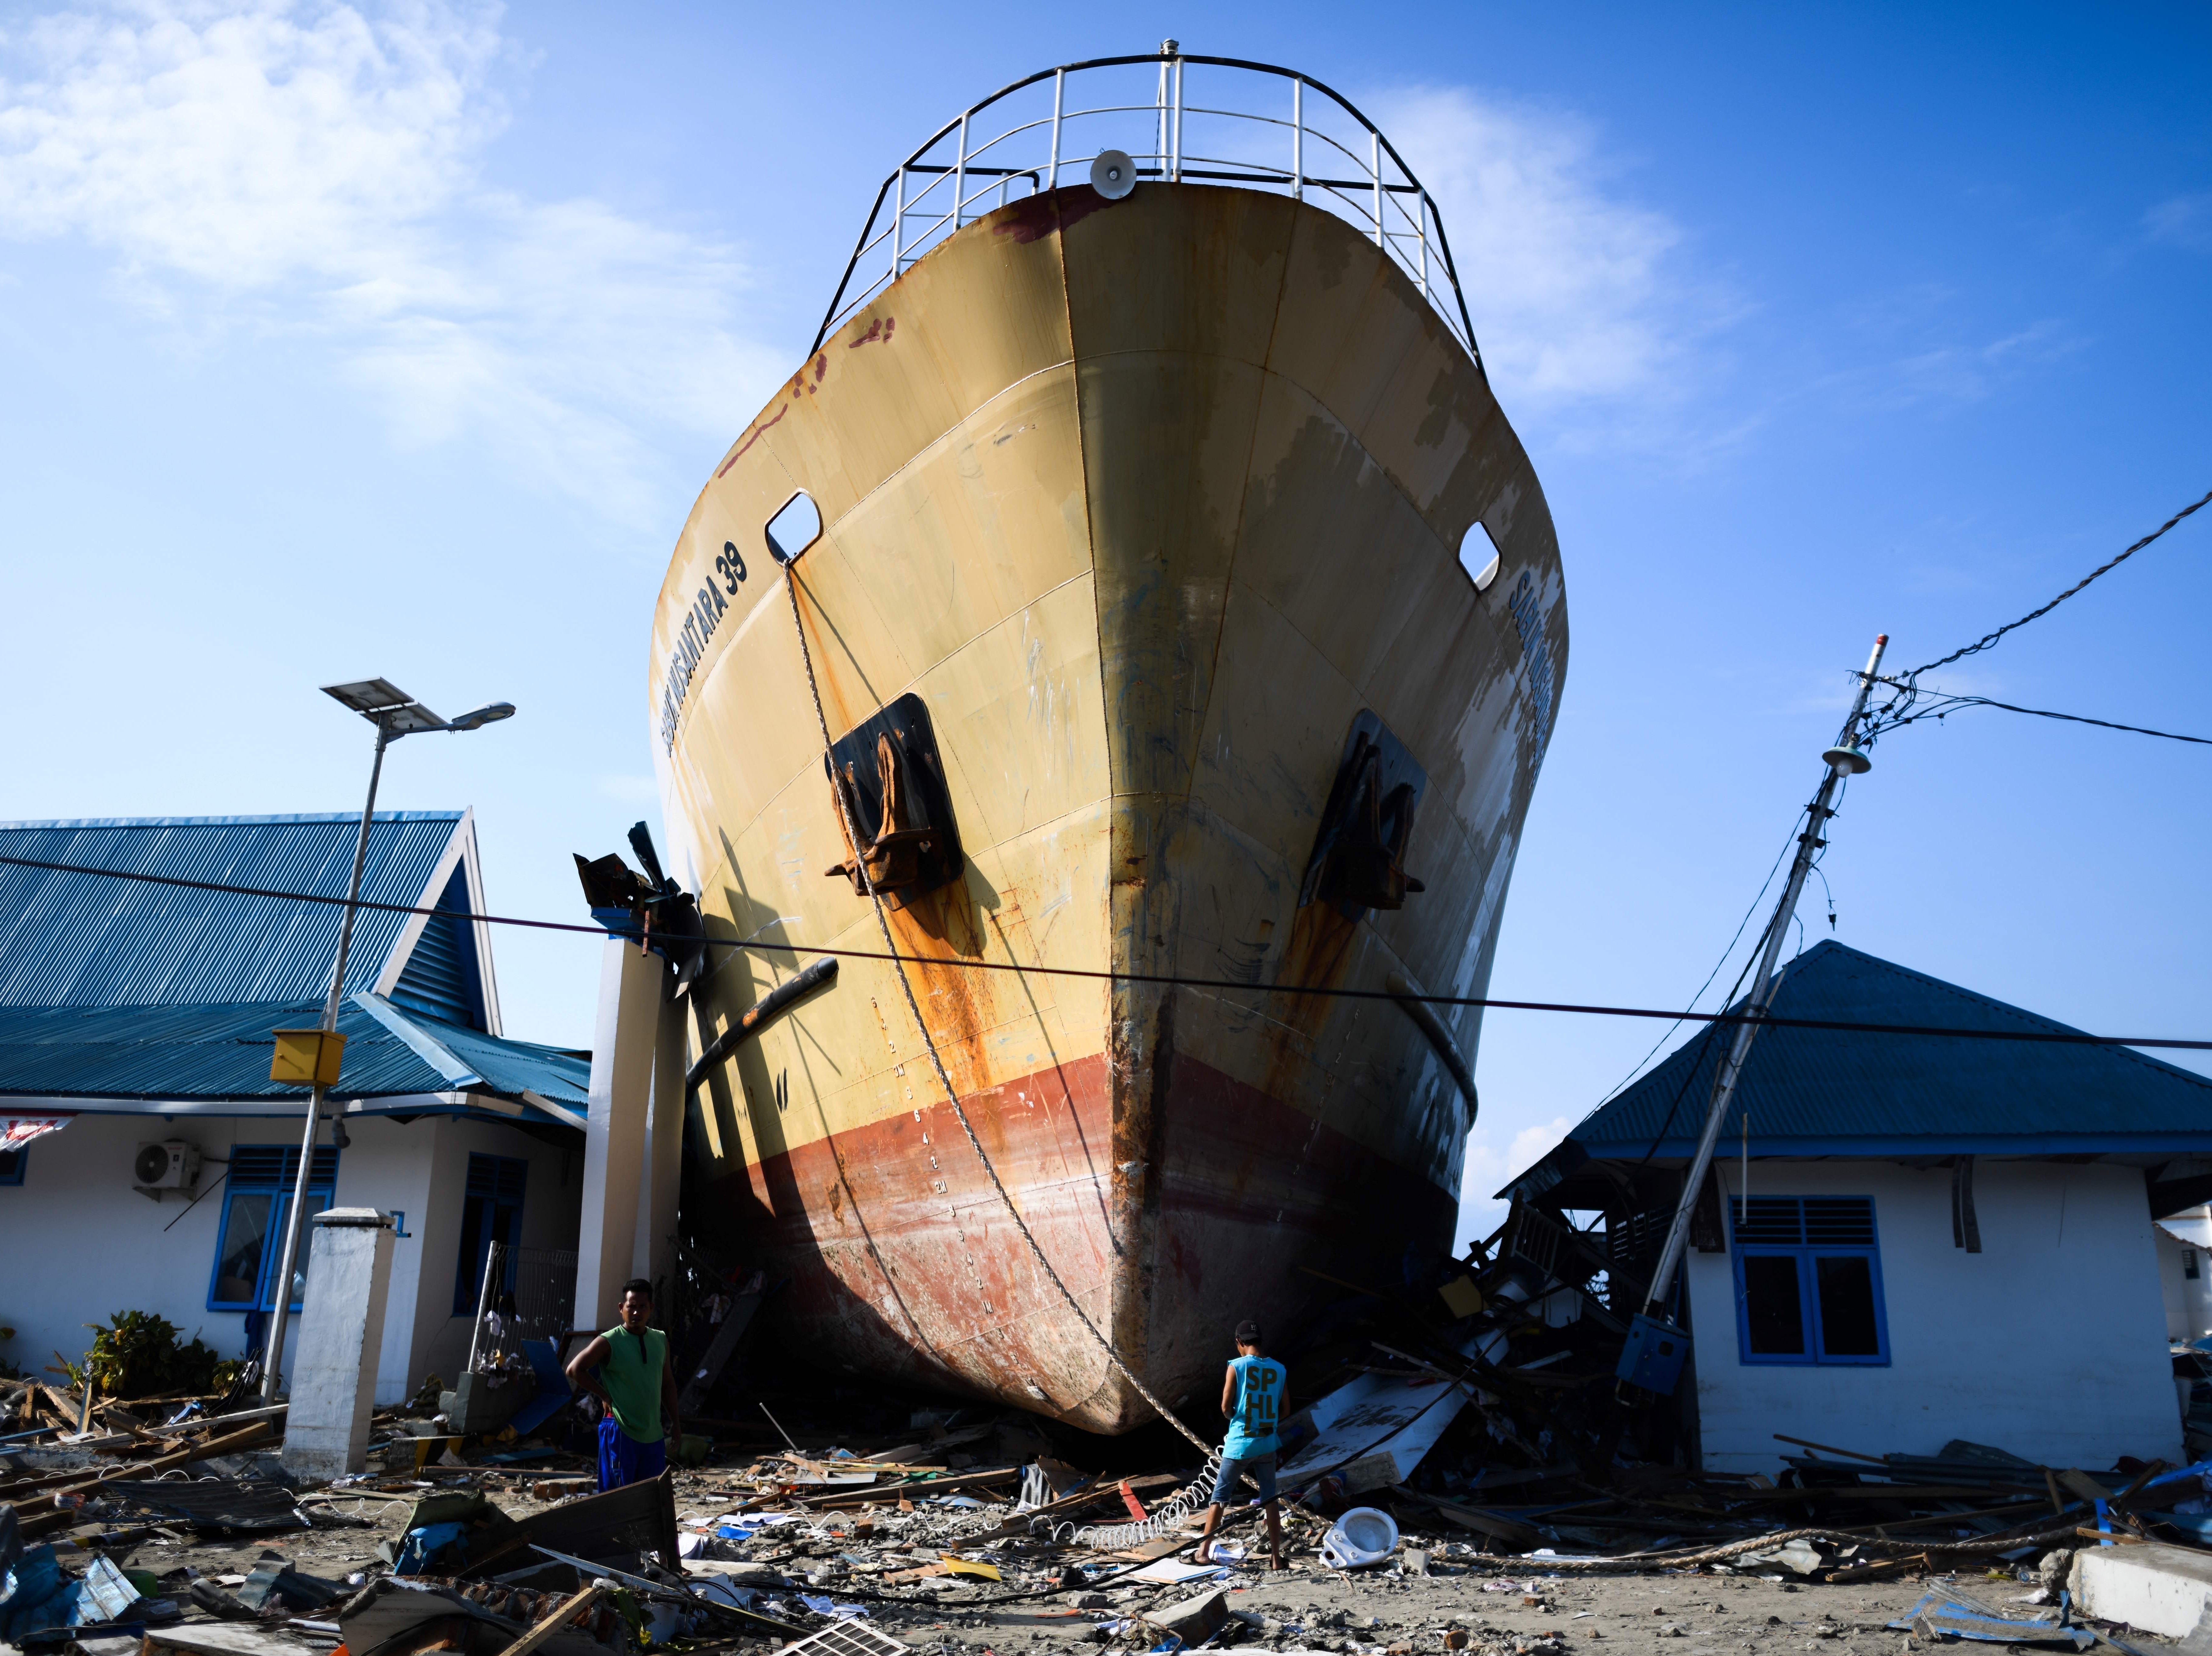 Quake survivors make their way past a passenger ferry wasehd up in Wani, Central Sulawesi, Indonesia, on October 3, 2018, after an earthquake and tsunami hit the area on September 28.